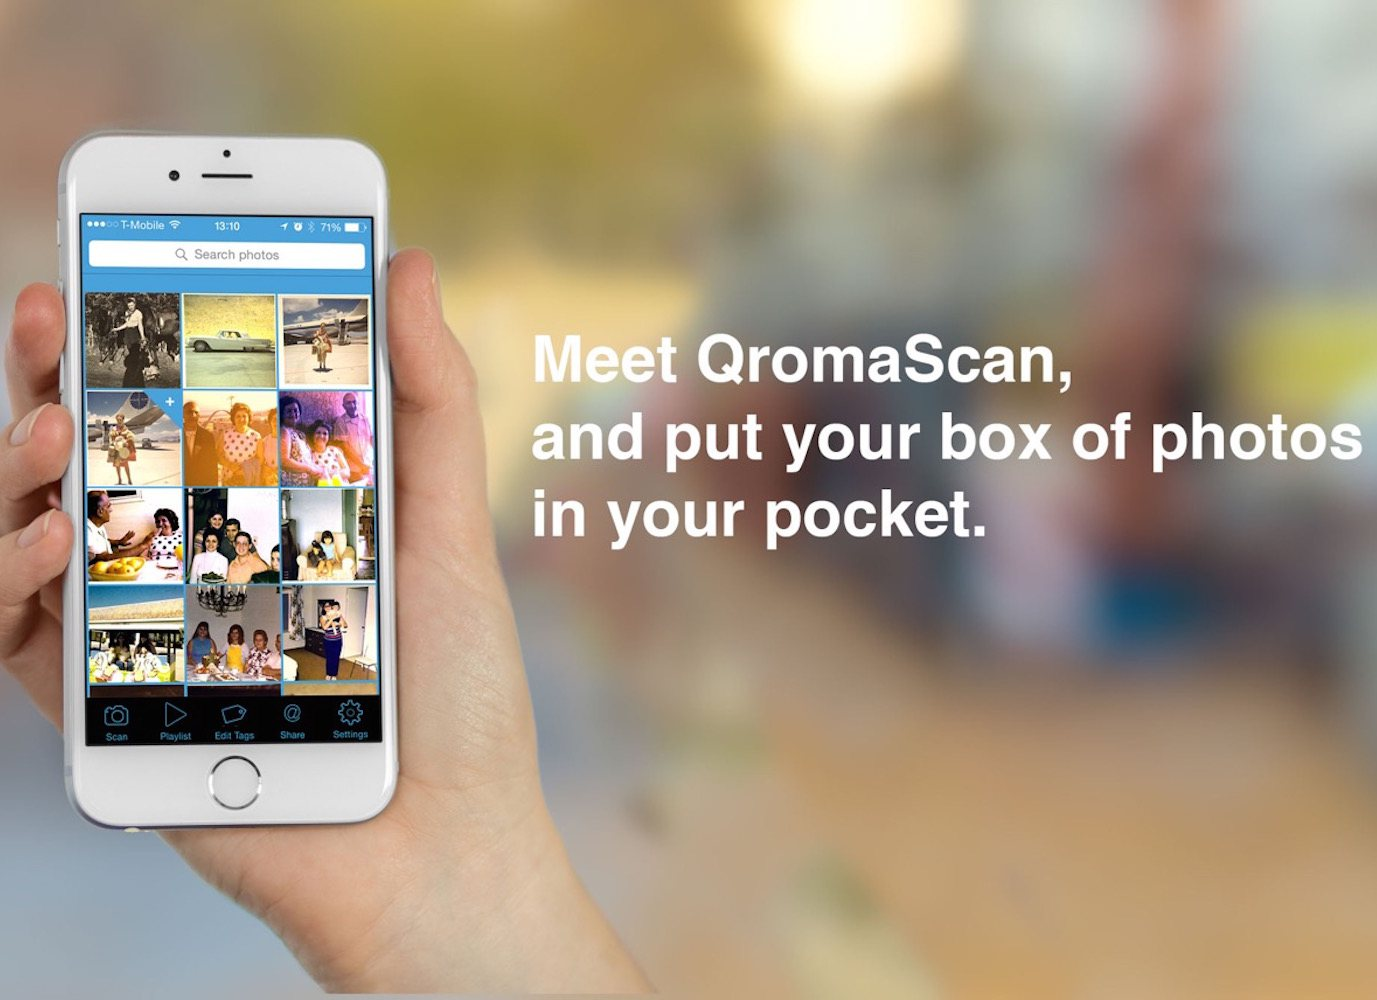 QromaScan – A New, Smarter Way to Scan Photos